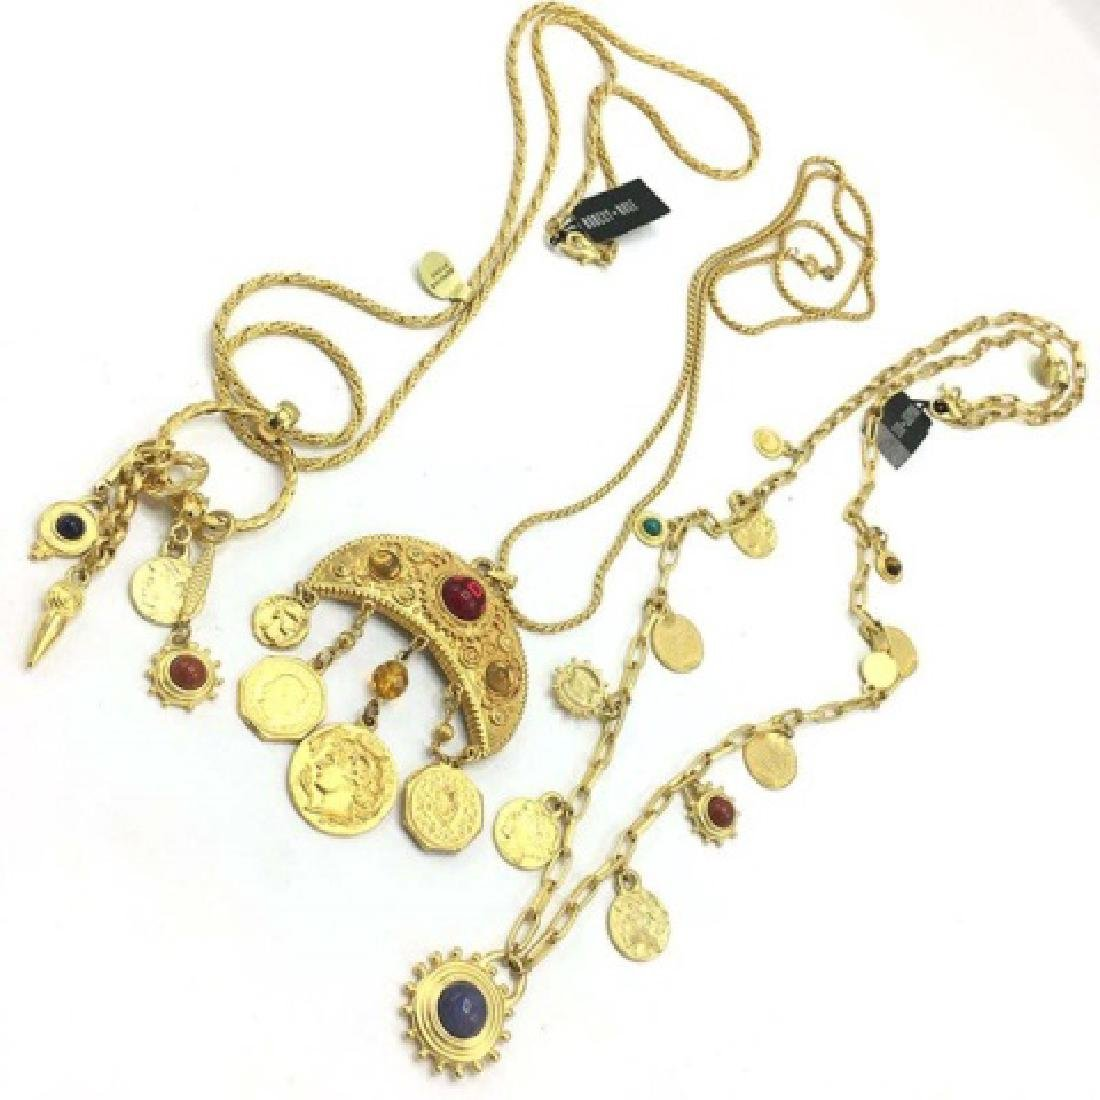 Vintage 1980s Costume Gold Roman Coin Necklaces - 3